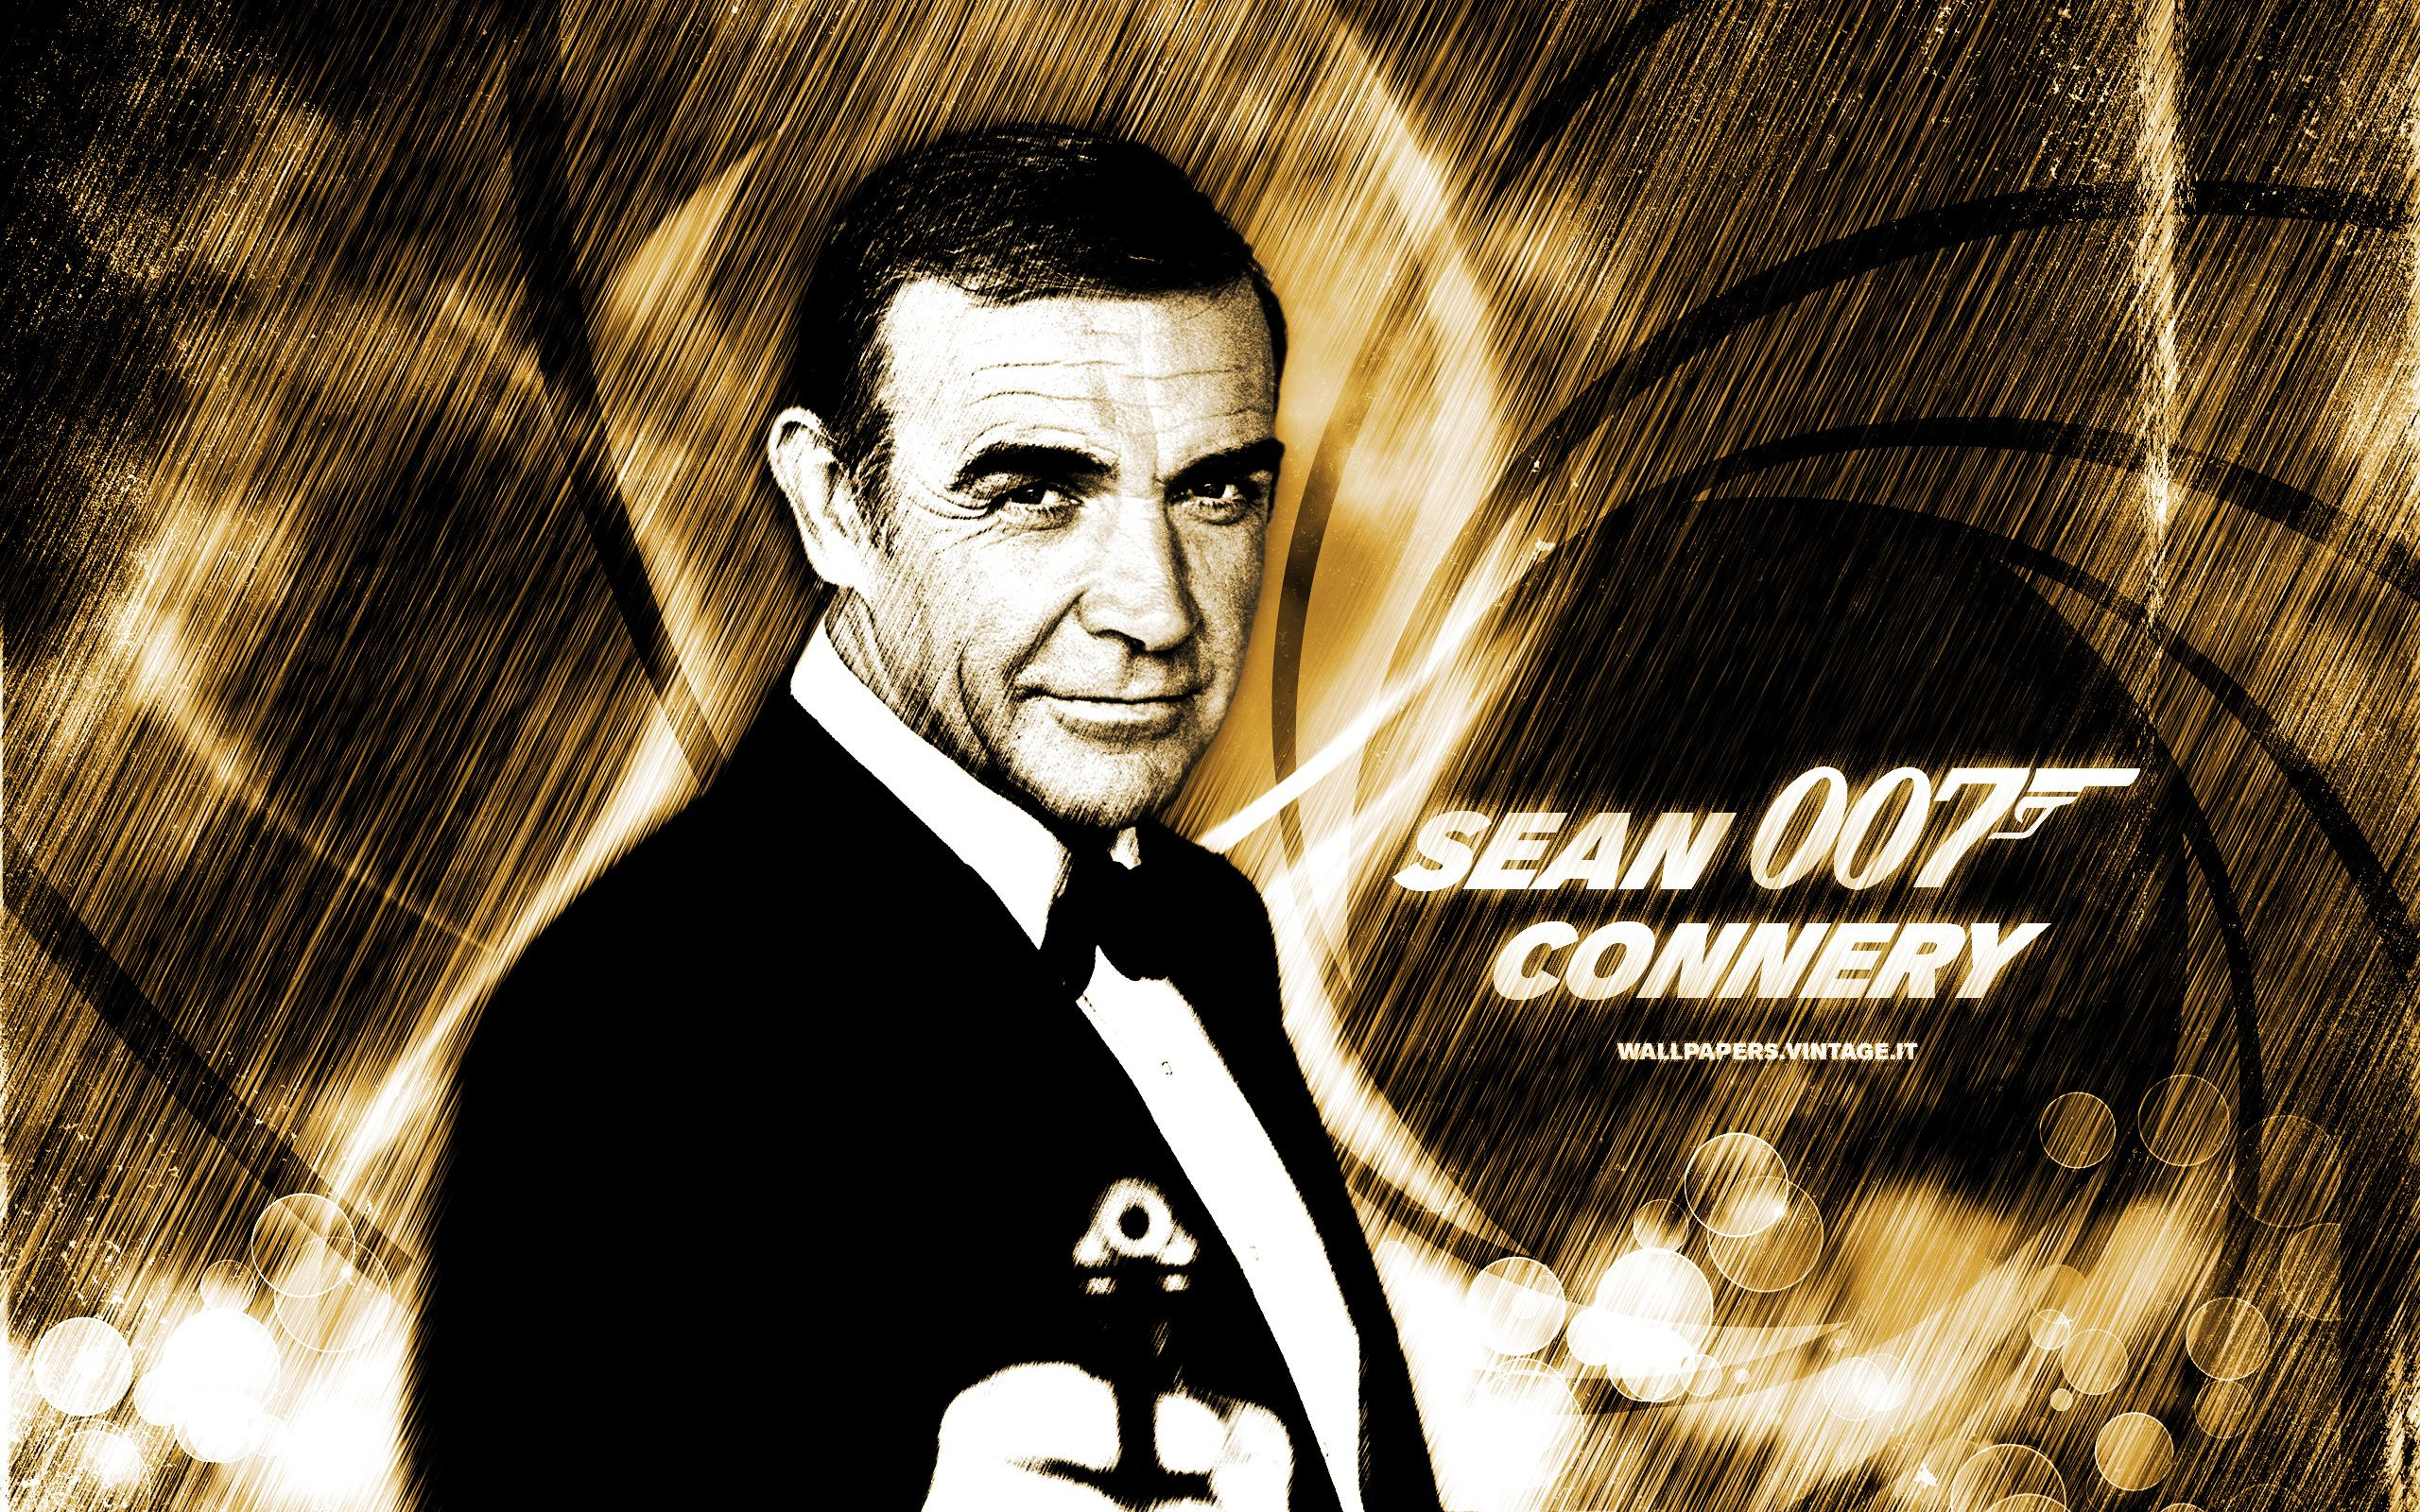 Sean Connery To Manchester United Hi Res In 2020 Sean Connery James Bond James Bond James Bond Movies